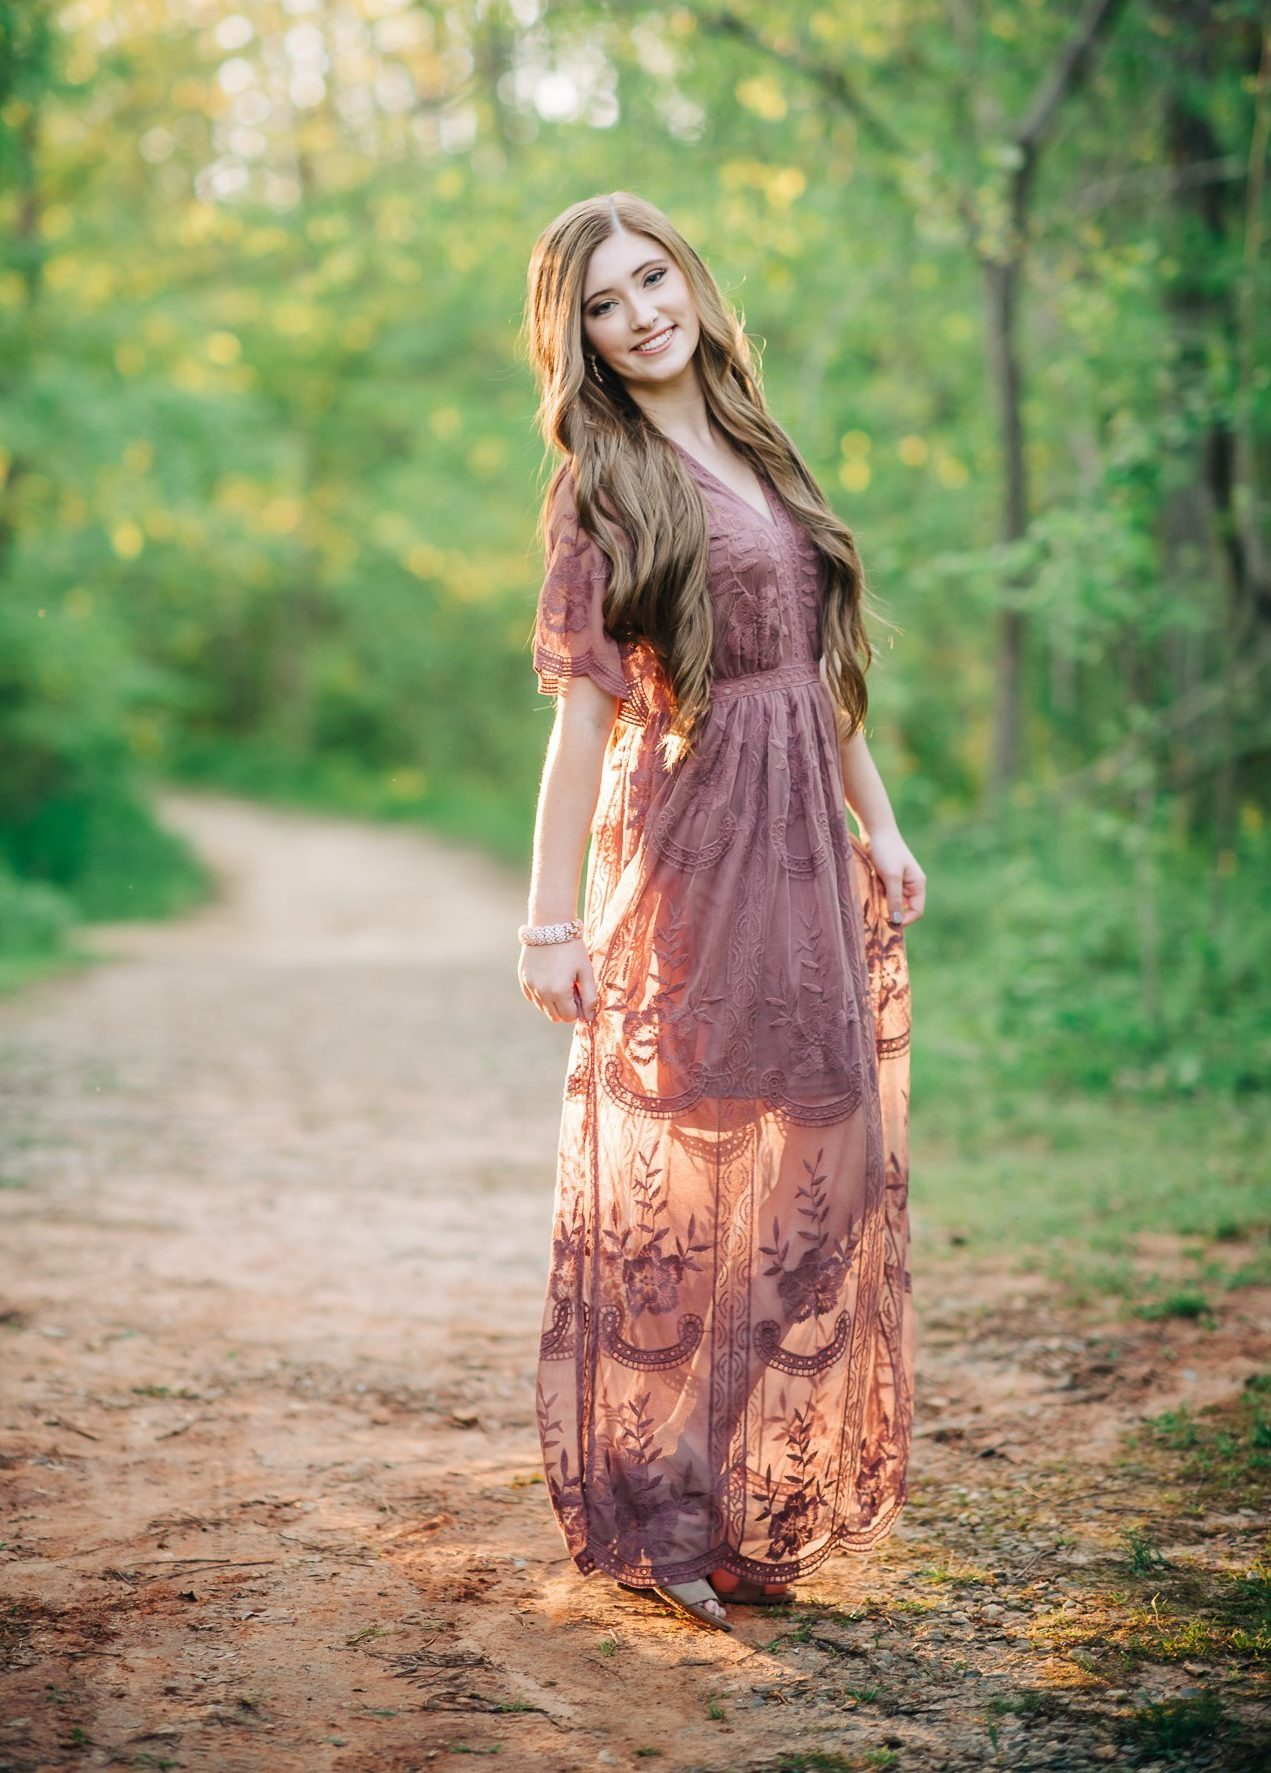 Romantic Senior session along the Haw River in Burlington, NC.